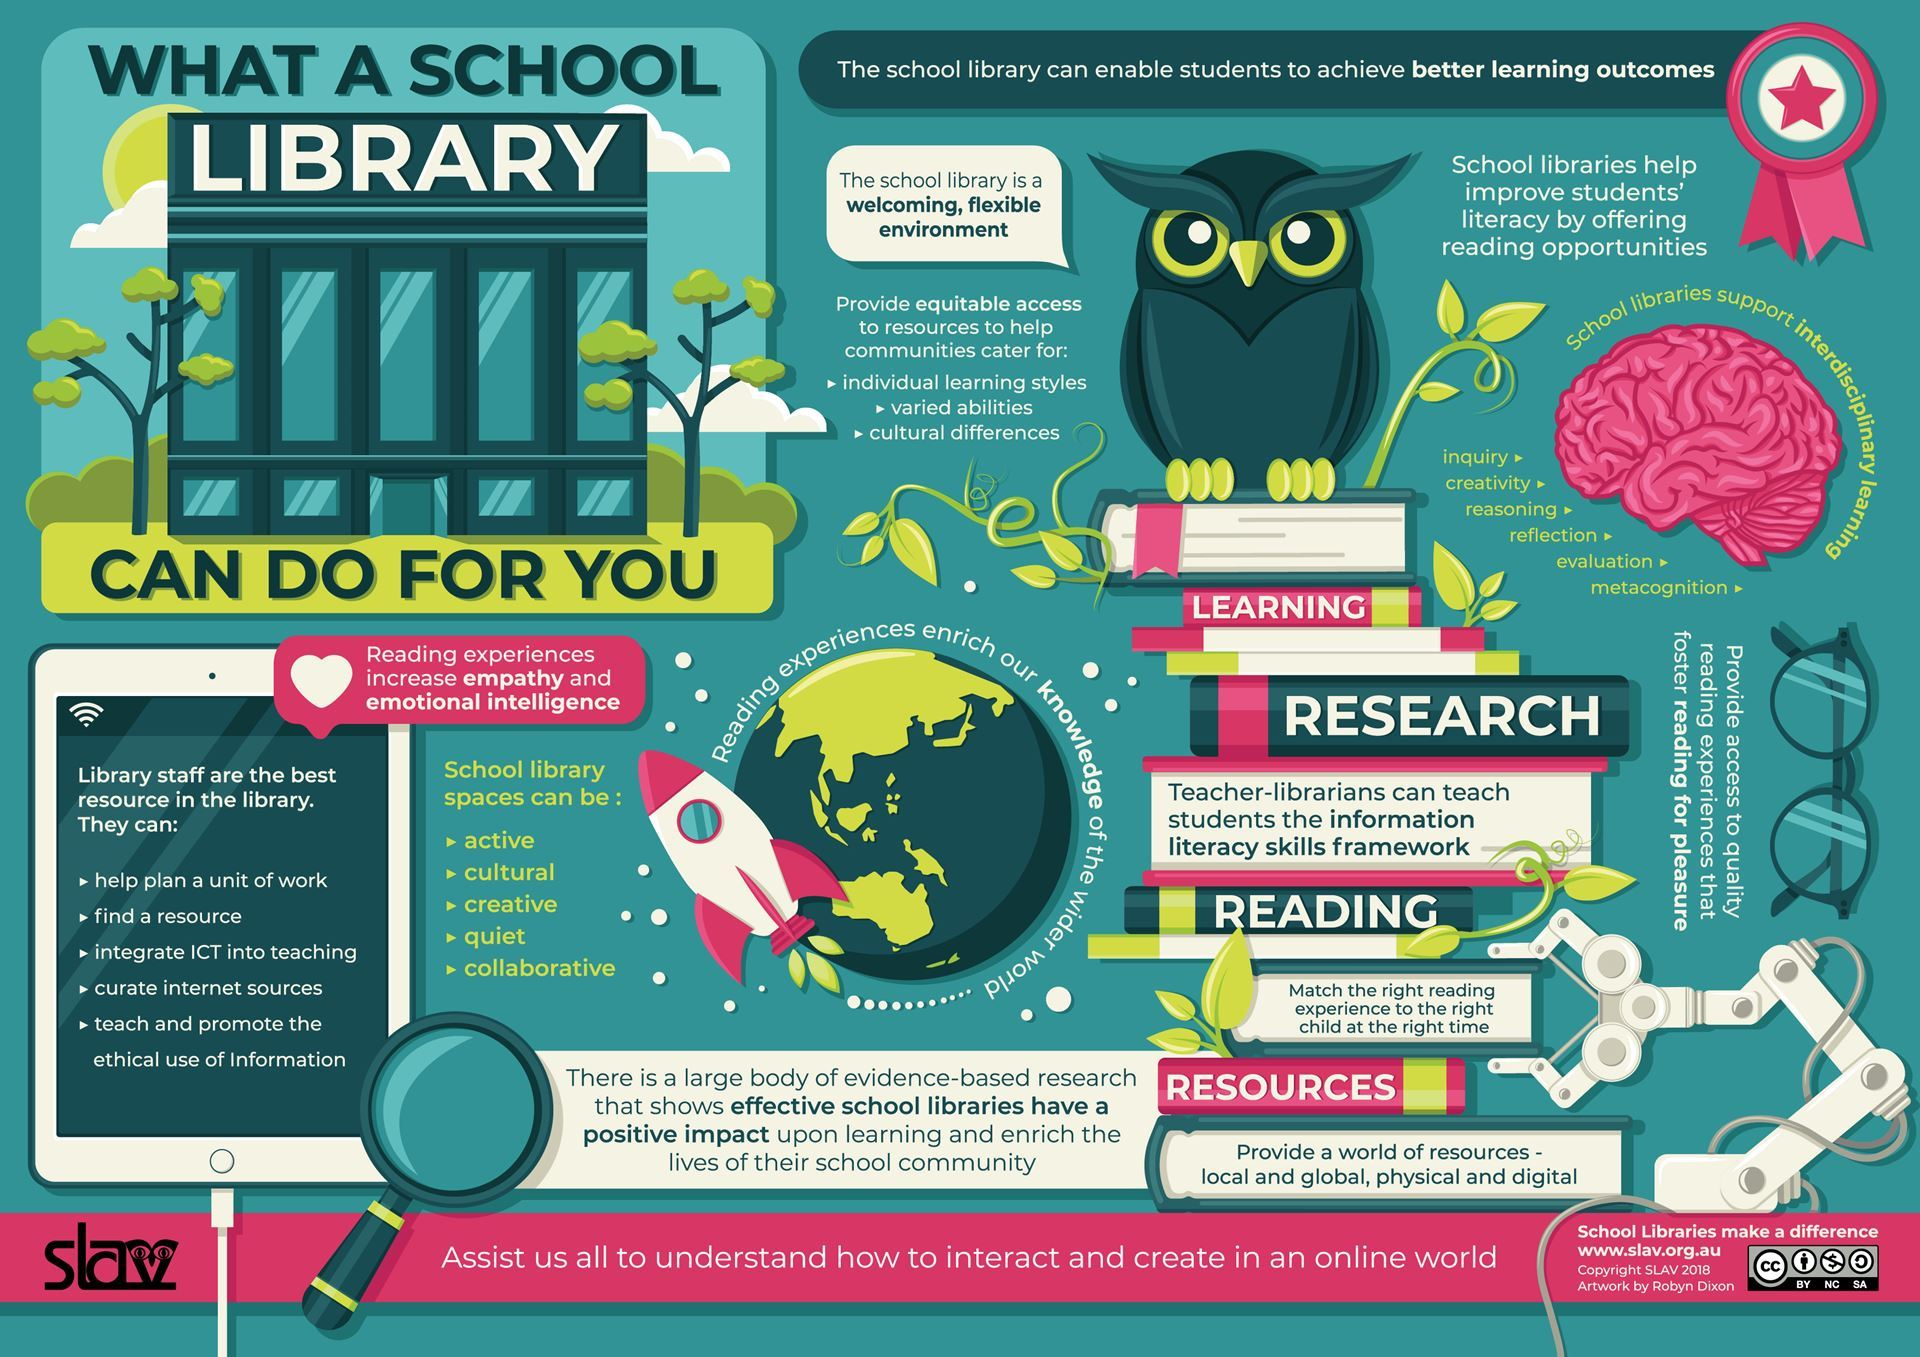 What a School Library can do for you